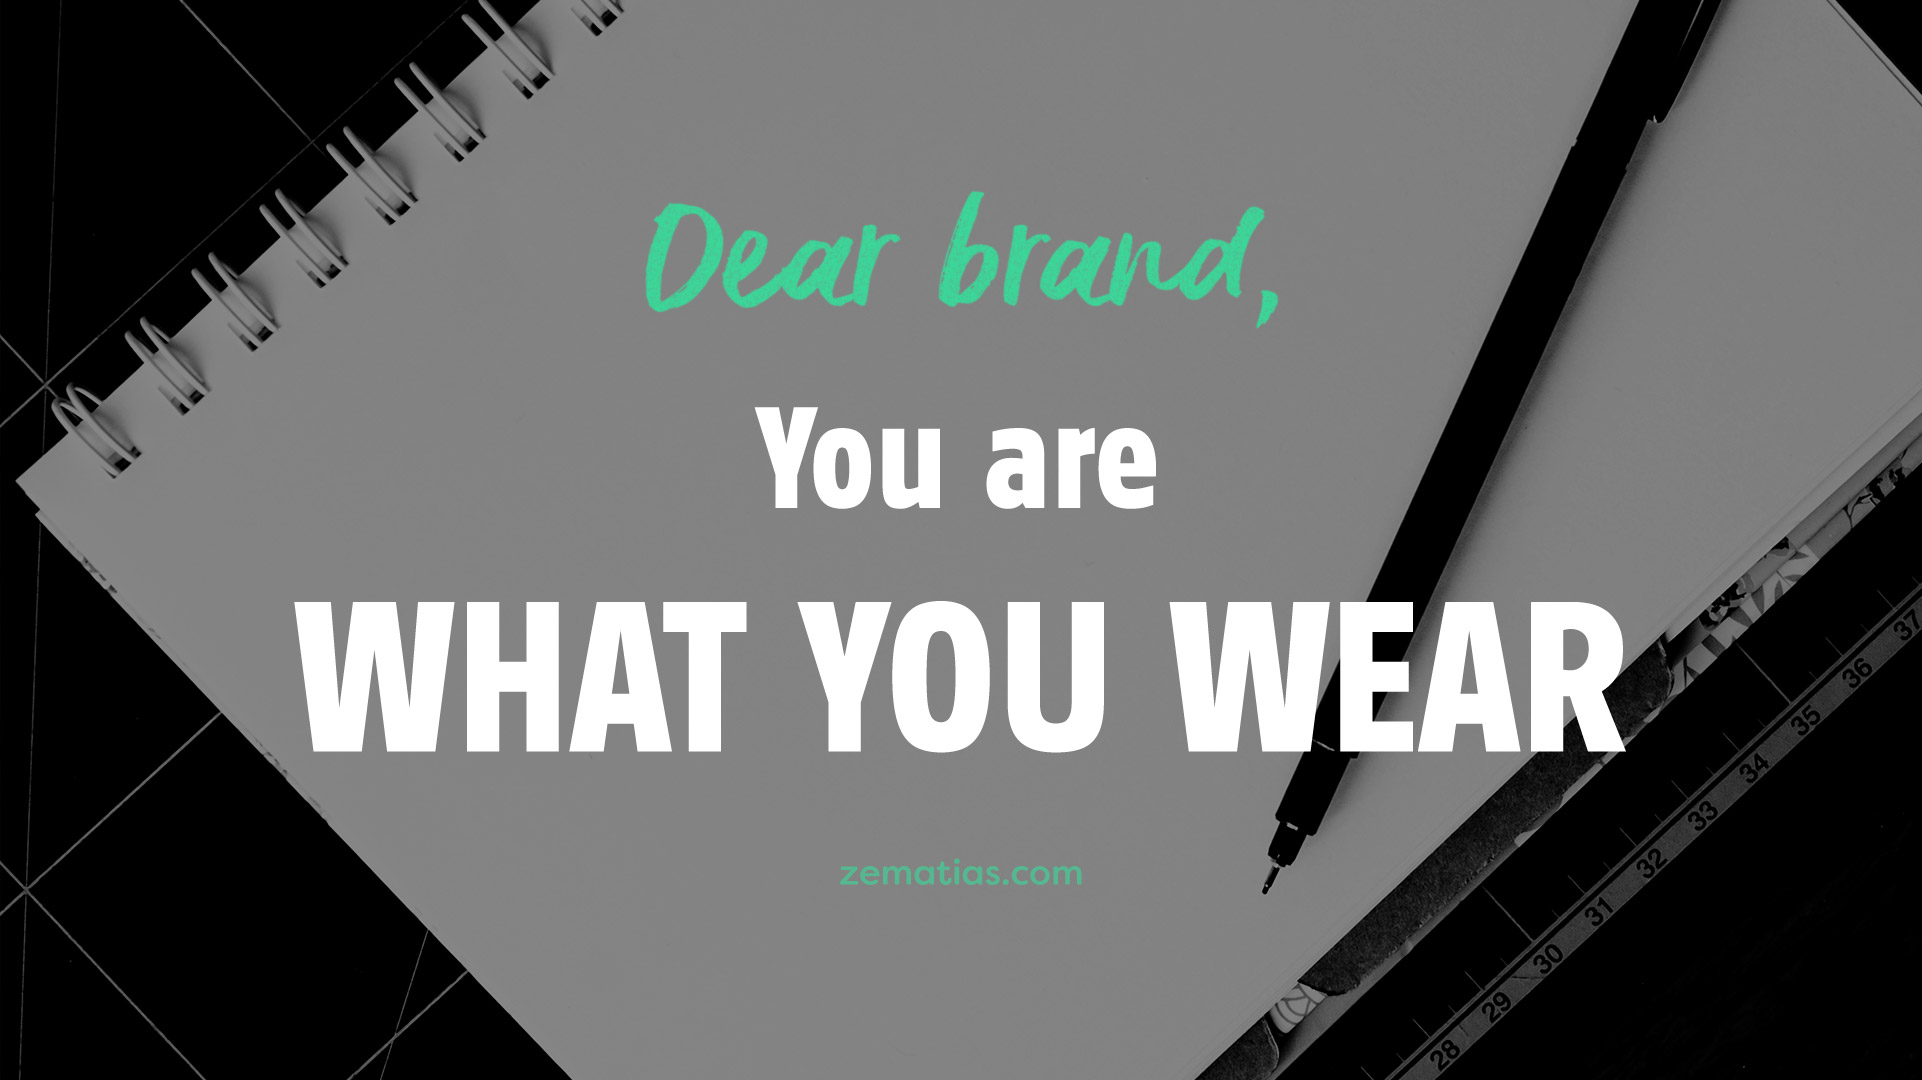 dear-brand-you-are-what-you-wear